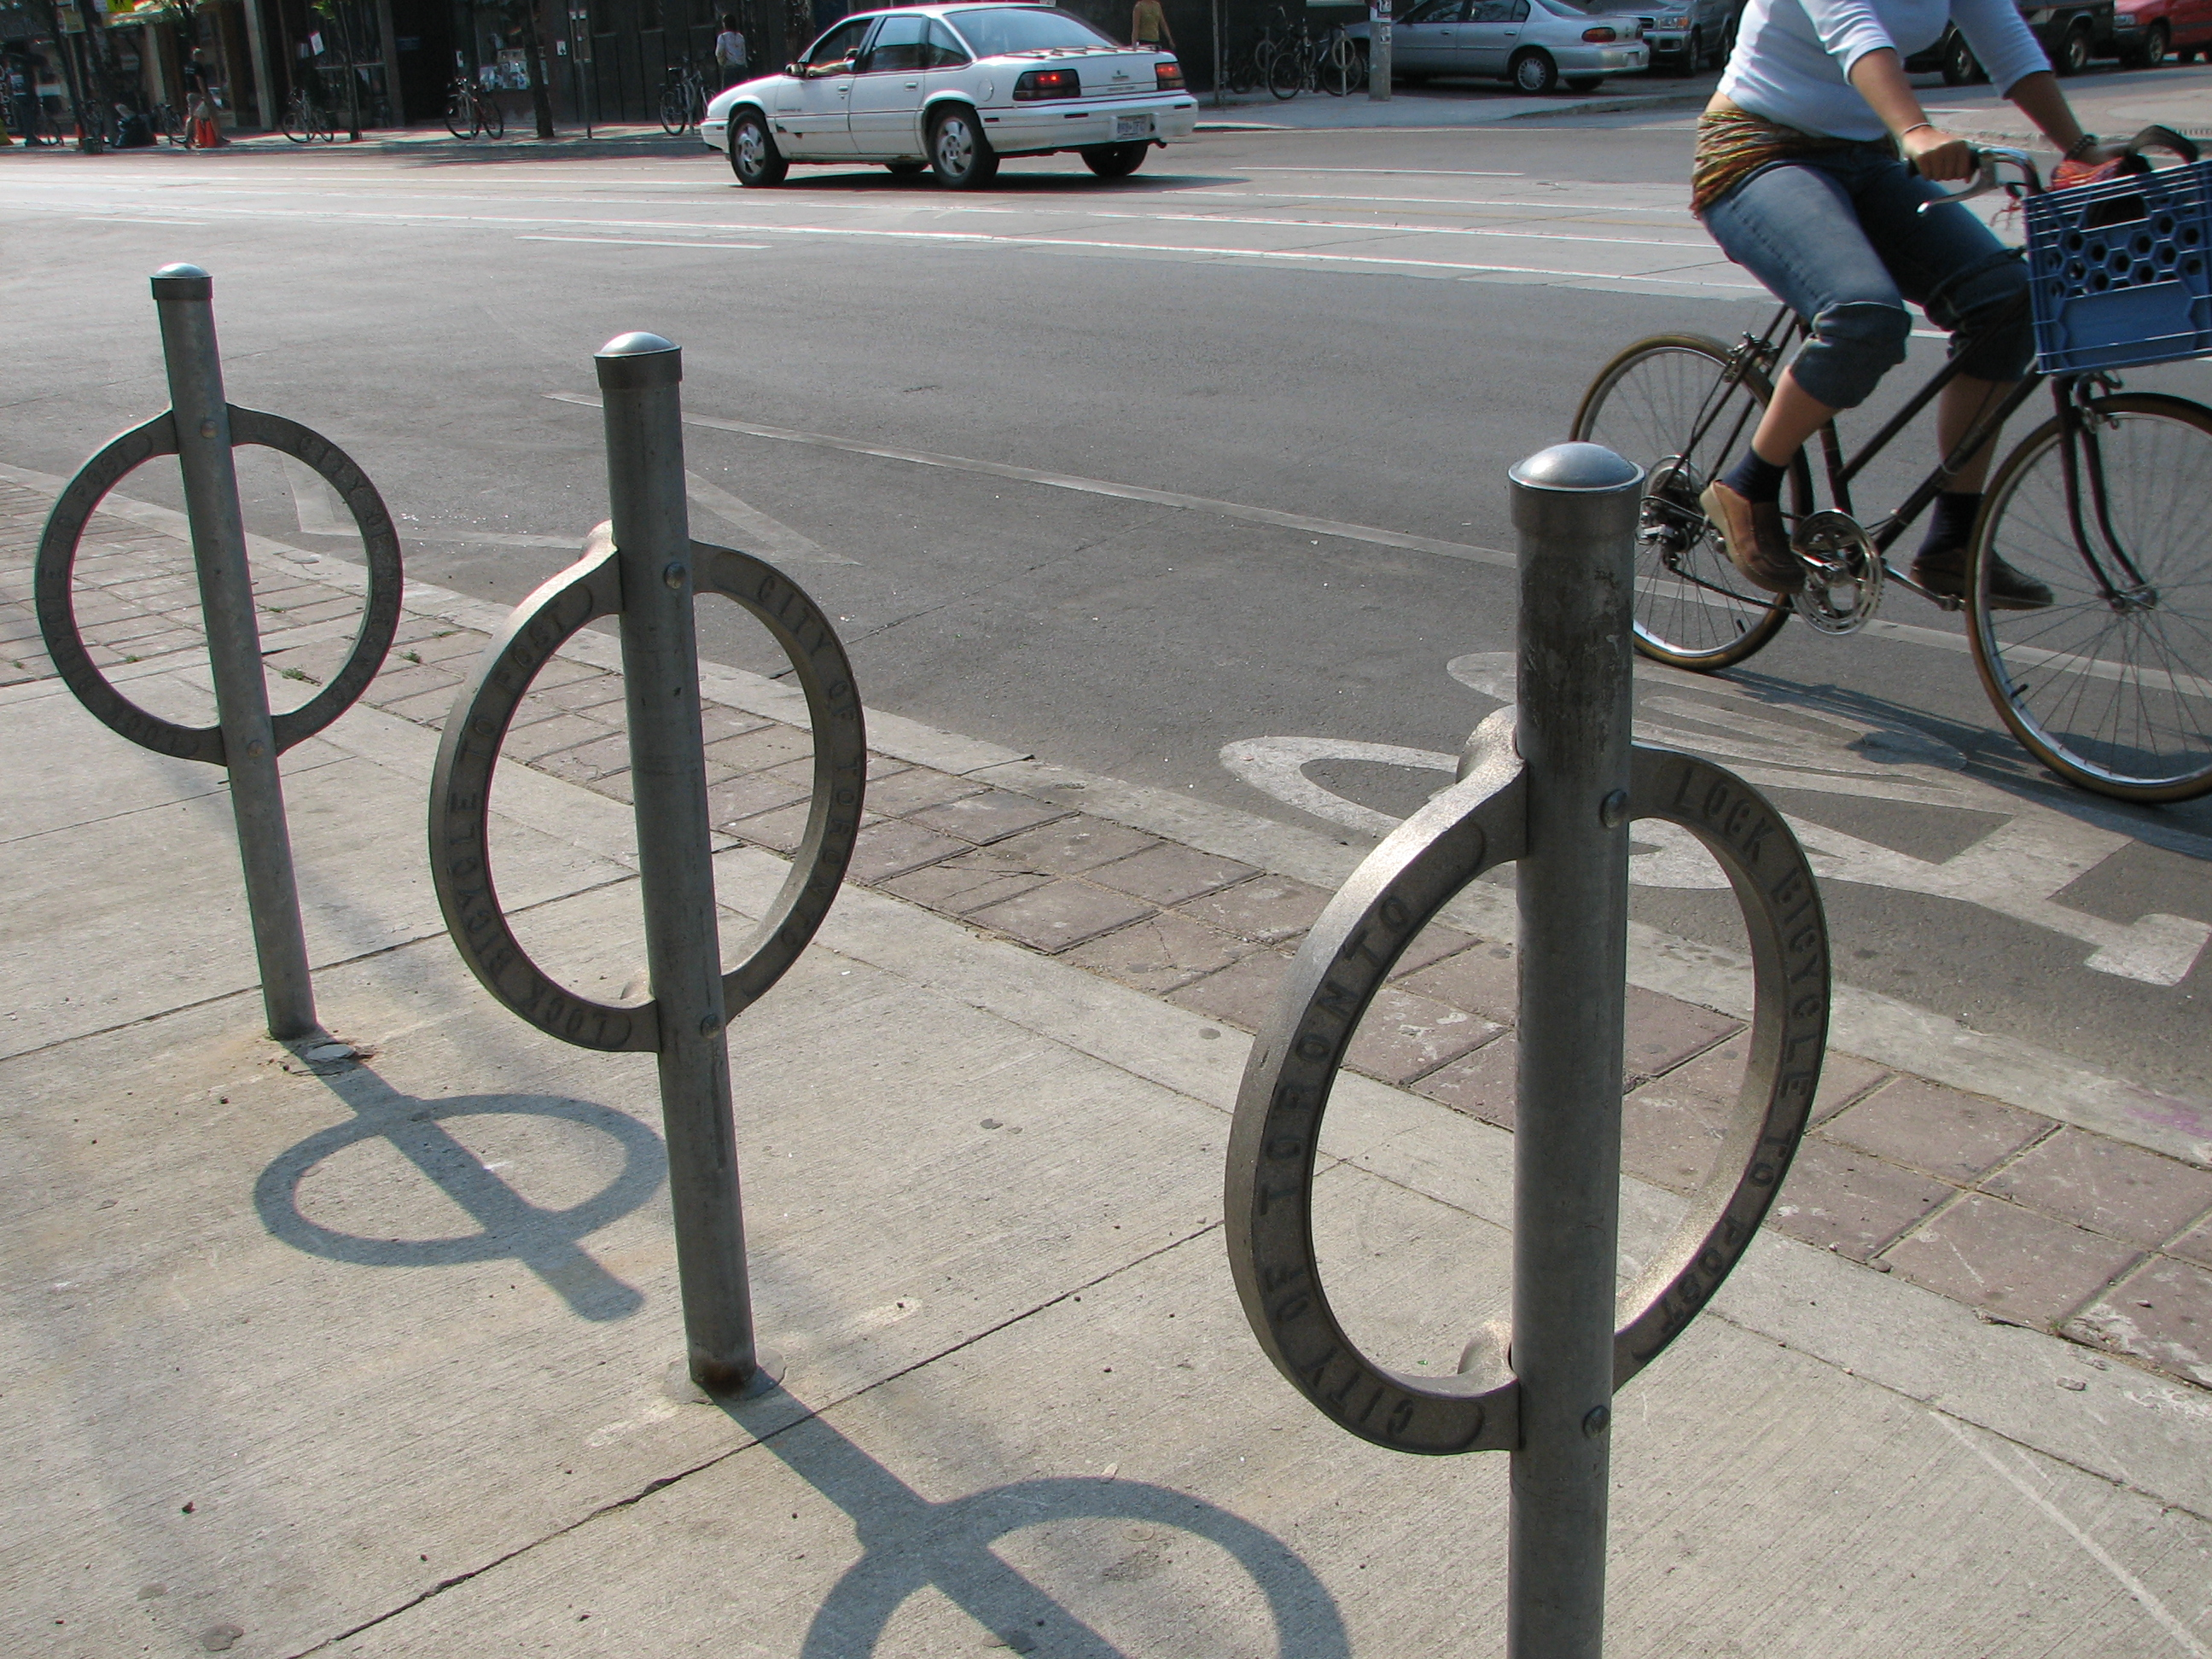 A photograph of a bike path on College Street in Toronto's Little Italy district. There is a bicycle on the path, and in the foreground there are locking poles.